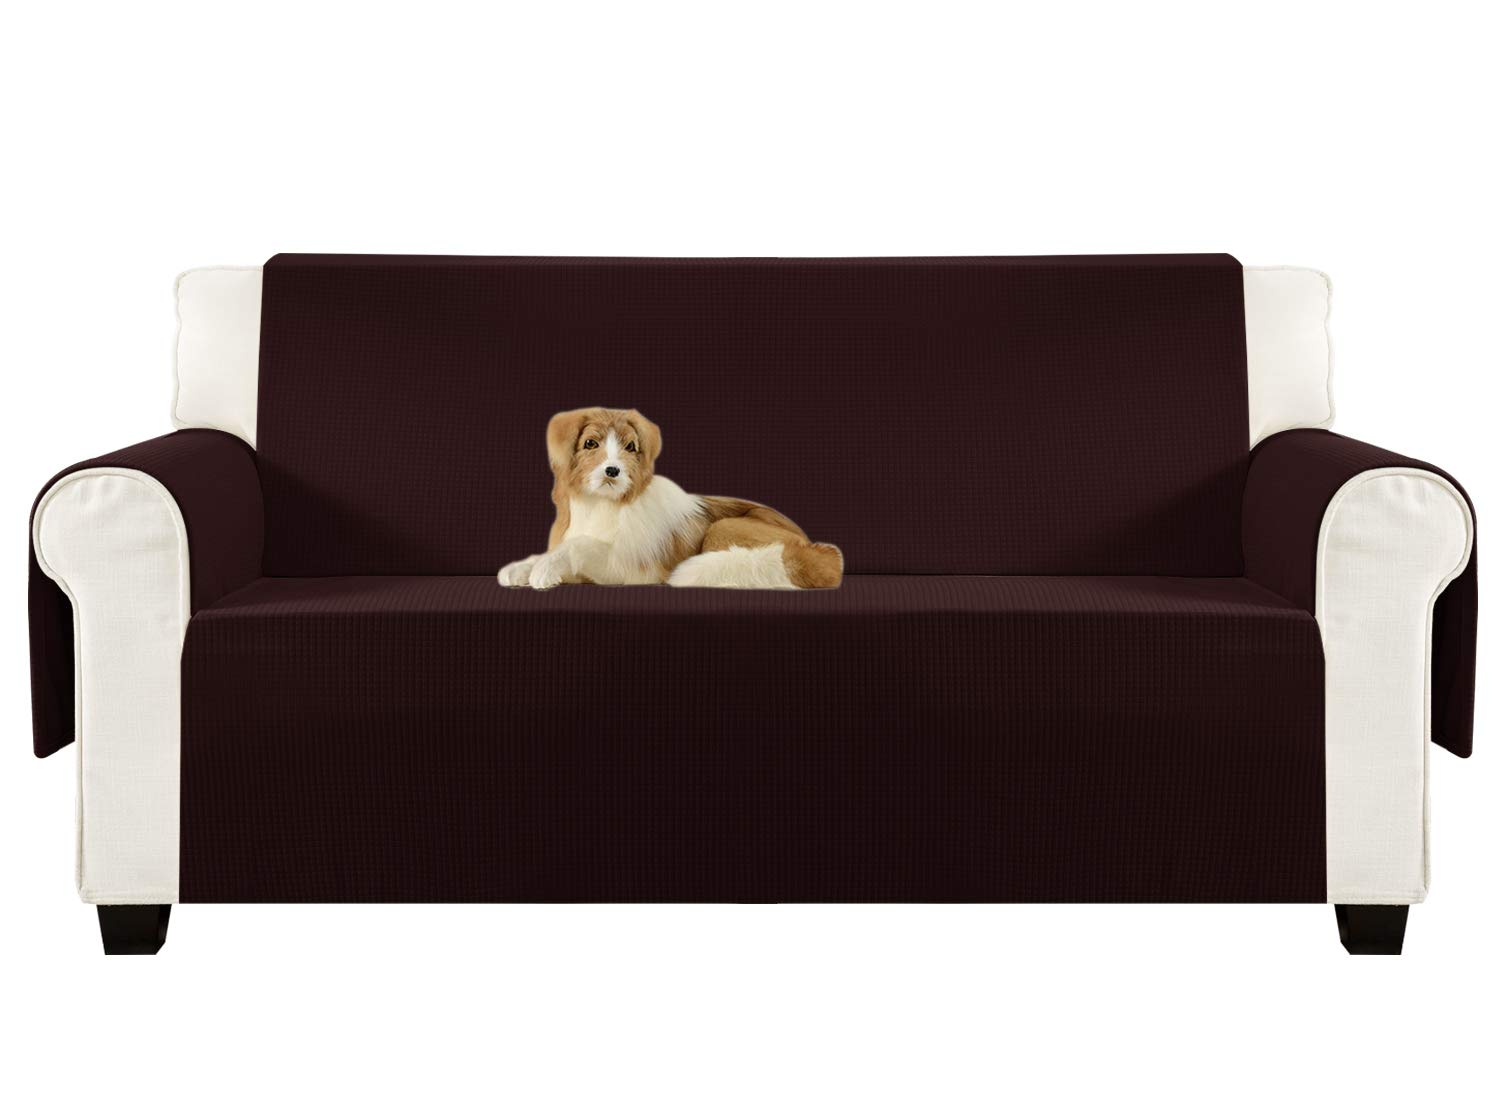 Excellent Aidear Anti Slip Sofa Slipcovers Jacquard Fabric Pet Dog Couch Covers Protectors Loveseat Dark Brown Ocoug Best Dining Table And Chair Ideas Images Ocougorg